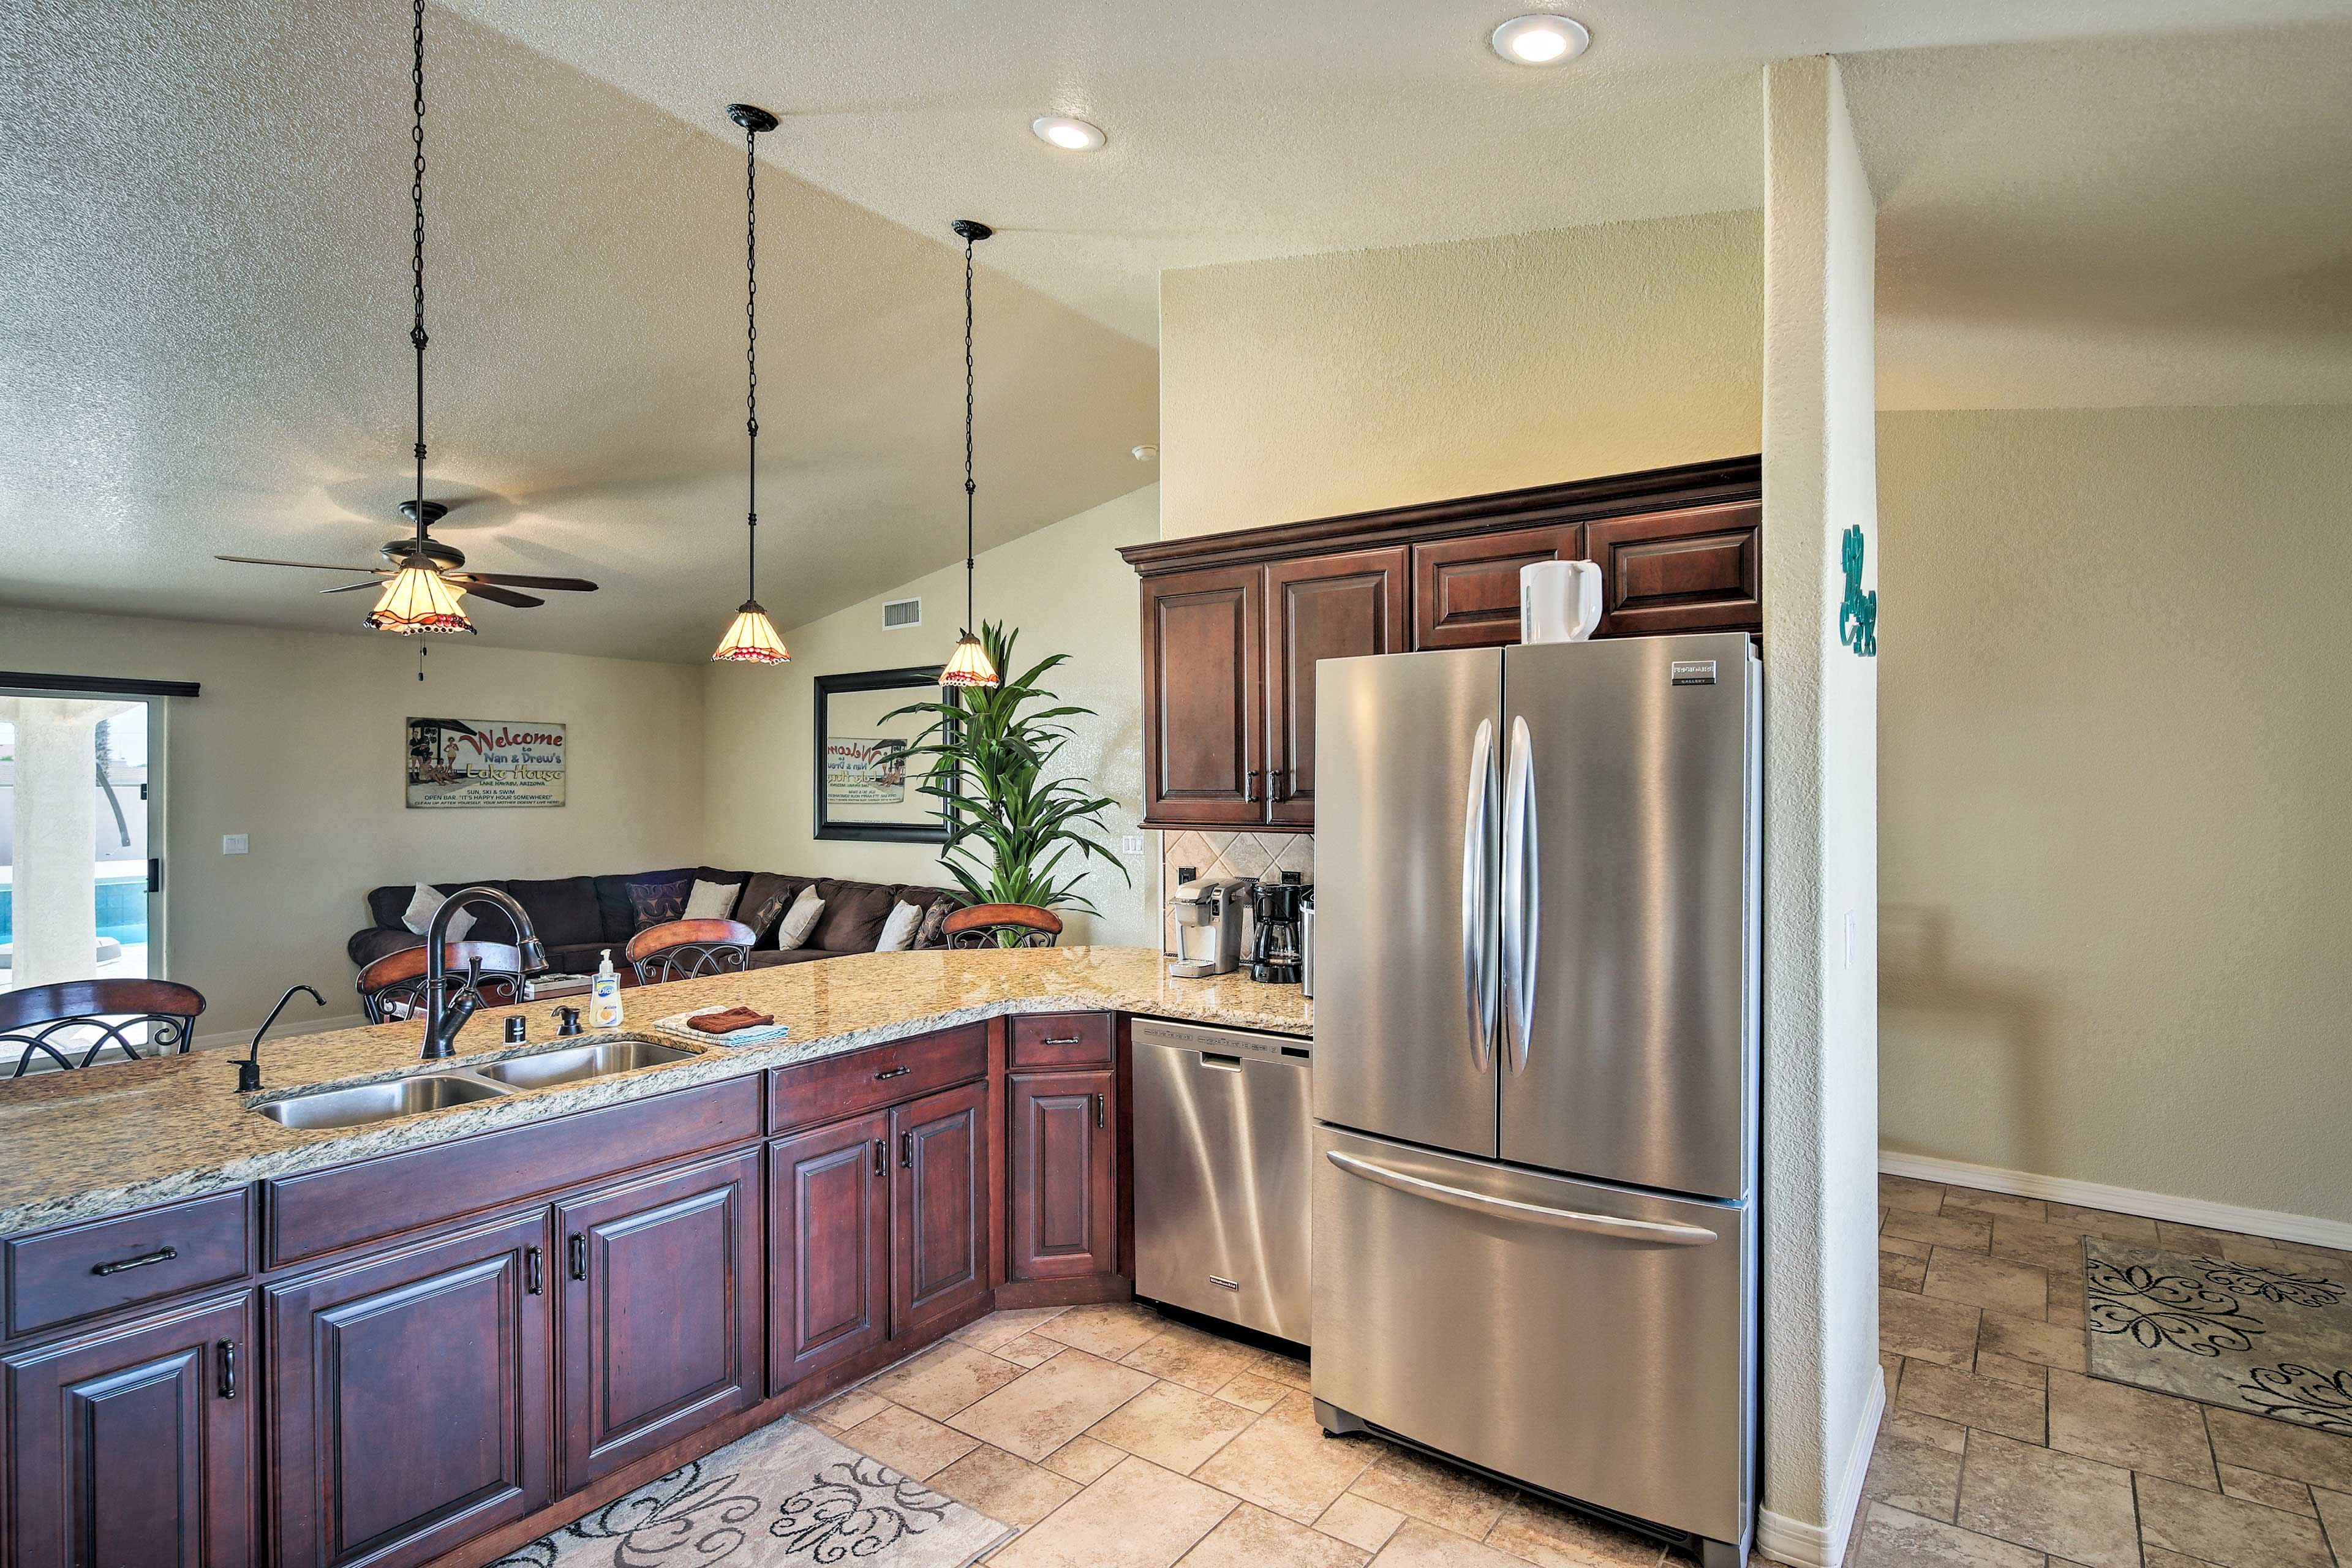 The kitchen is fully equipped with state-of-the-art stainless steel appliances.